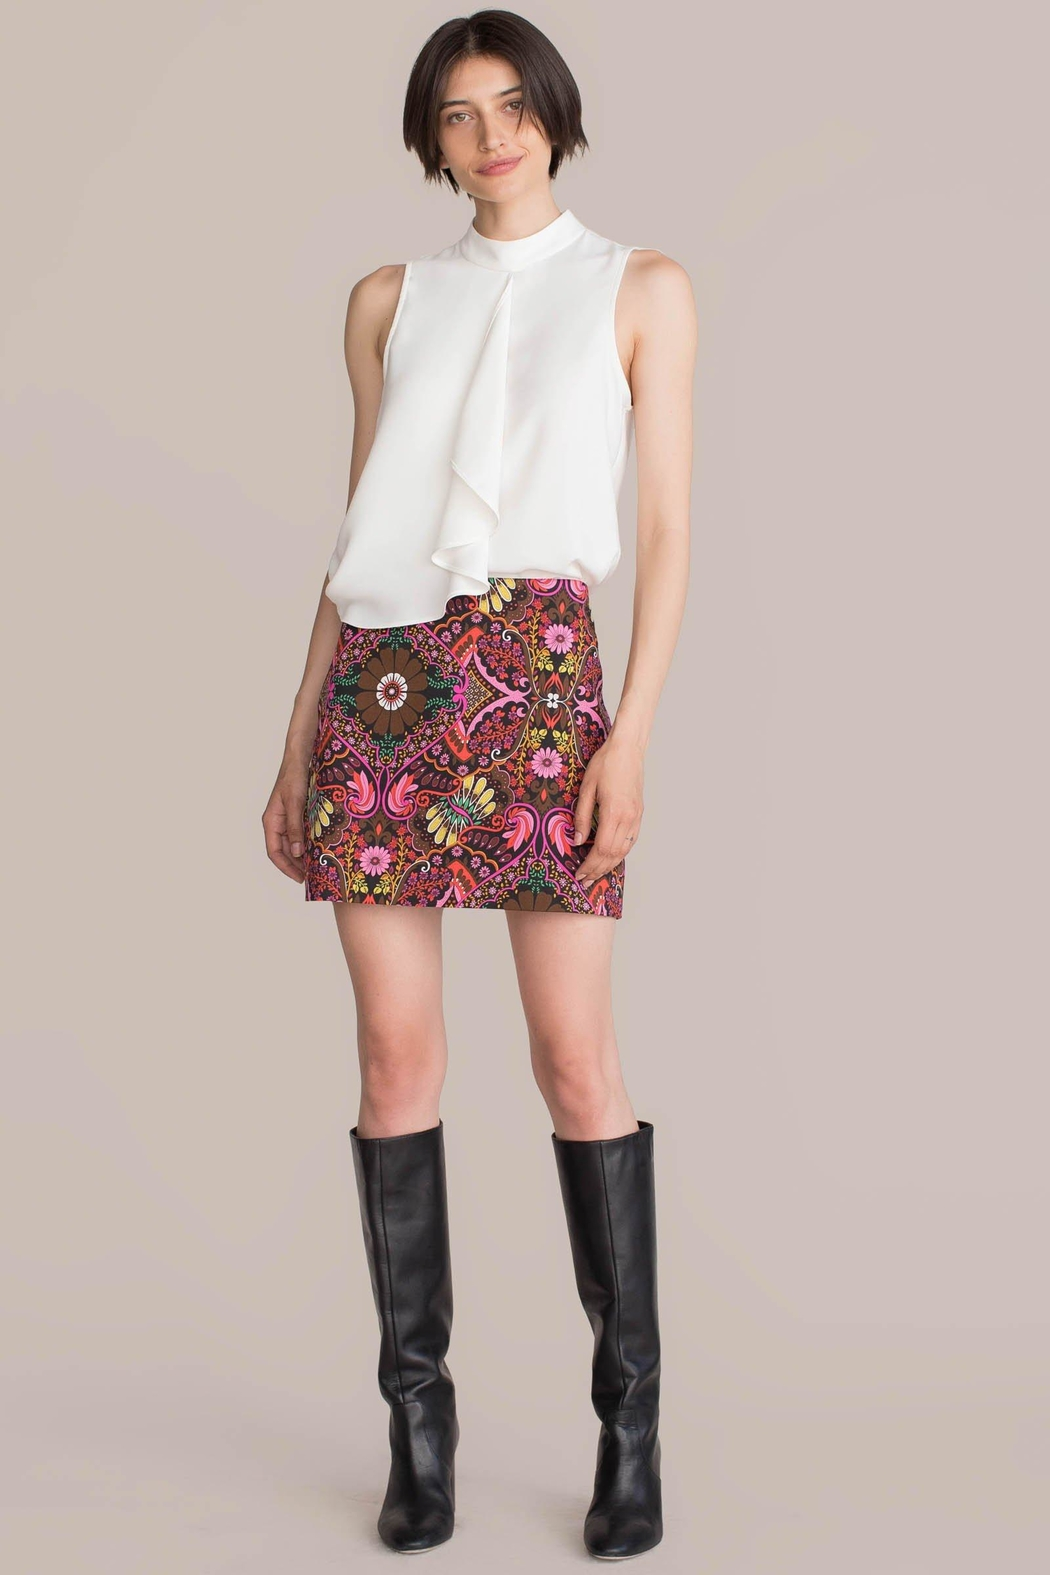 Trina Turk Rico 2 Skirt - Side Cropped Image